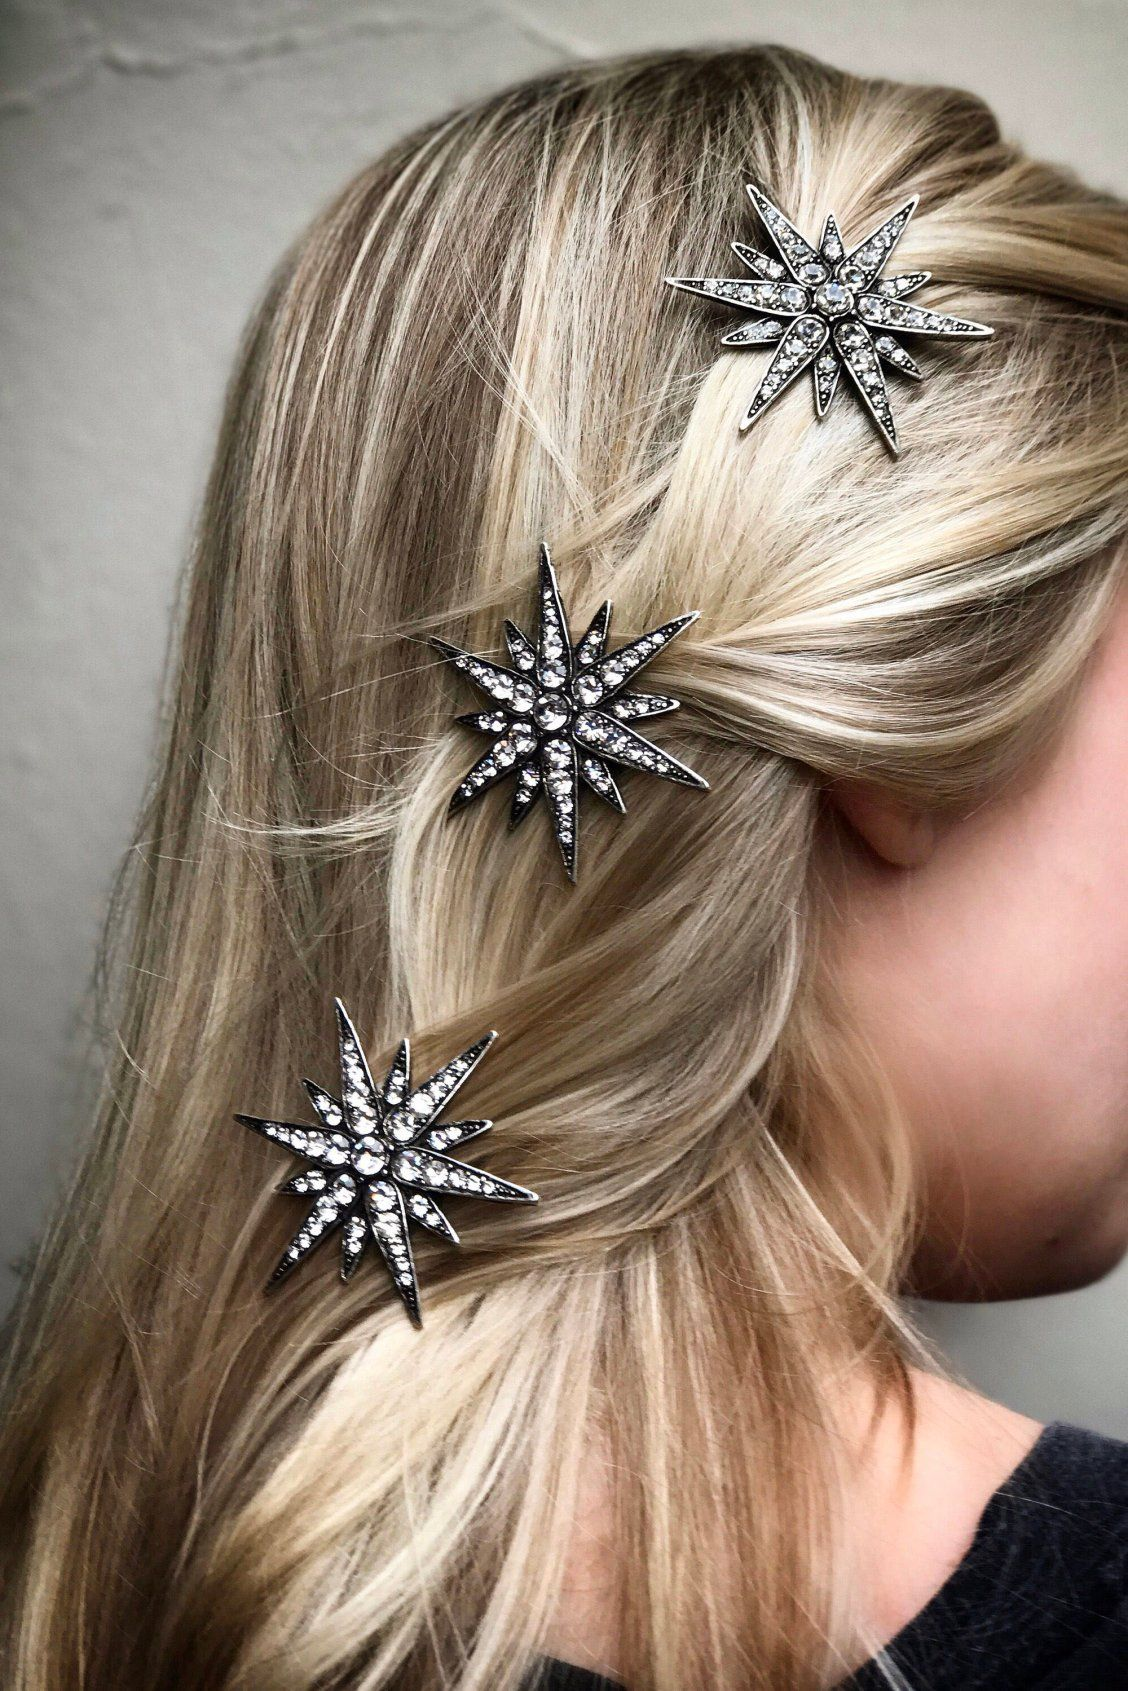 Starburst Hair Clip Barrette Star Crystal Rhinestone  Linx  in 2019 ... 2a01e315c7cd